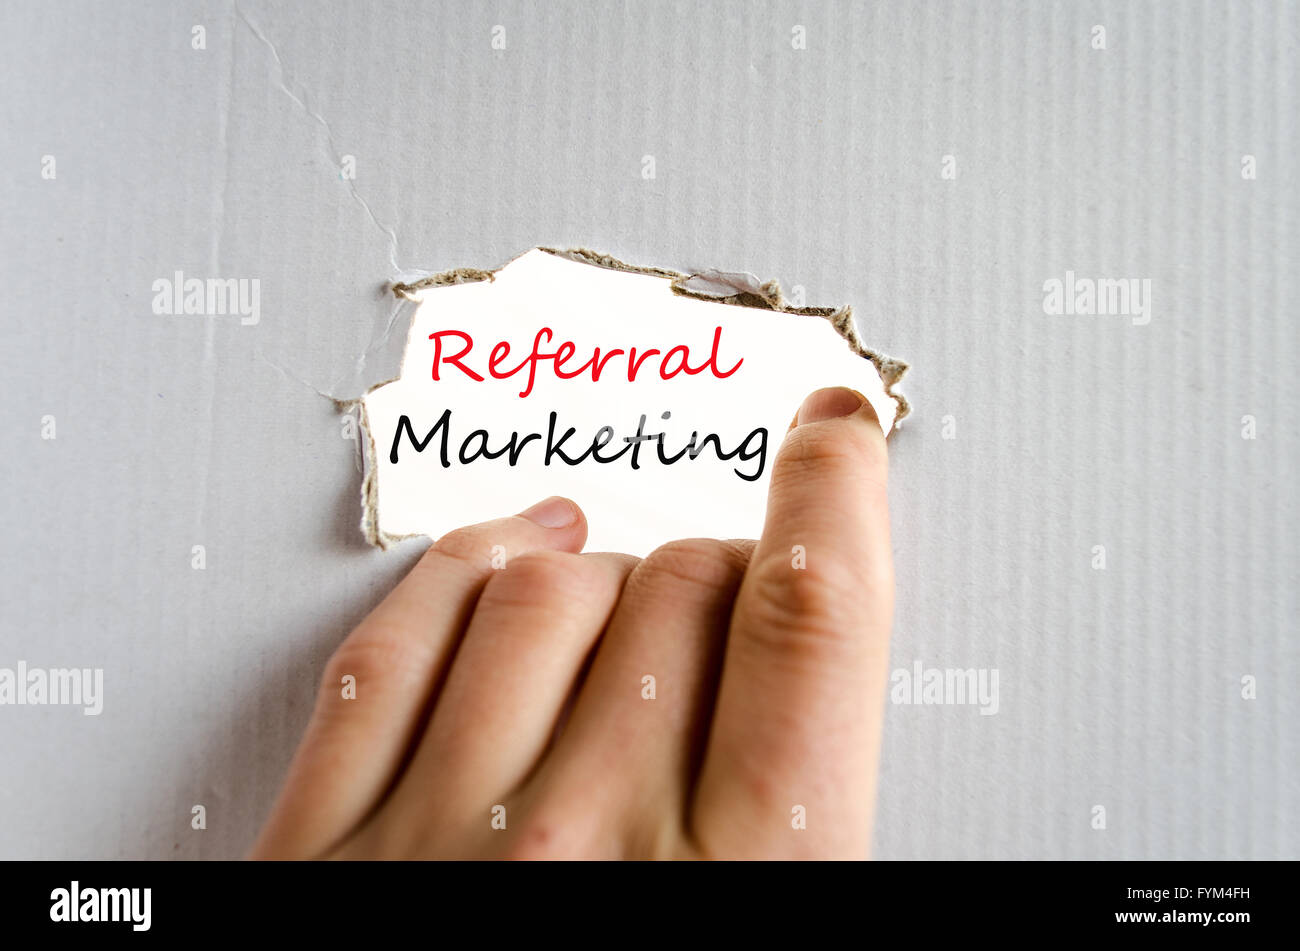 Referral Marketing Concept - Stock Image